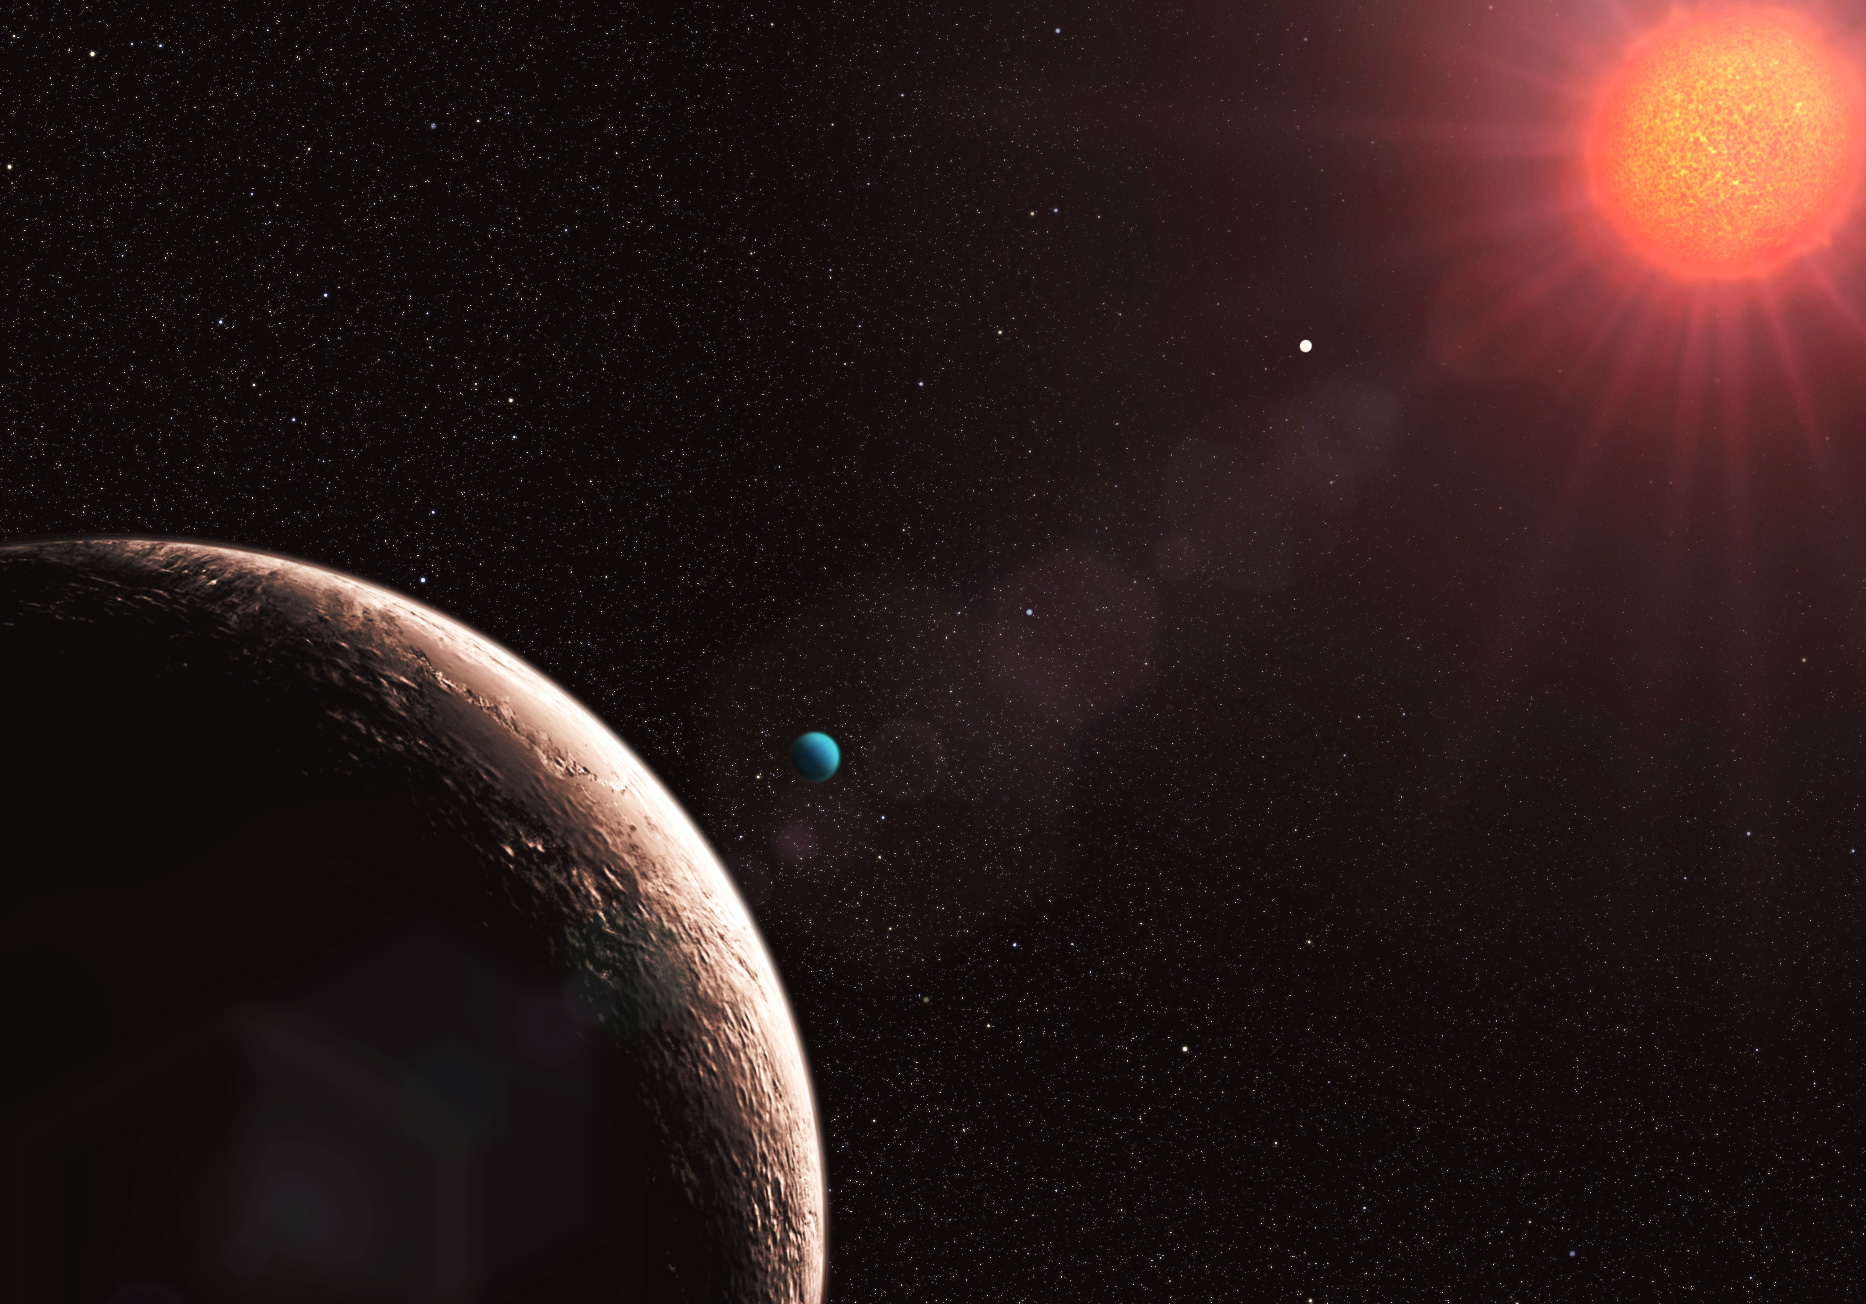 File:Gliese 581 Artist's impression.jpg - Wikimedia Commons